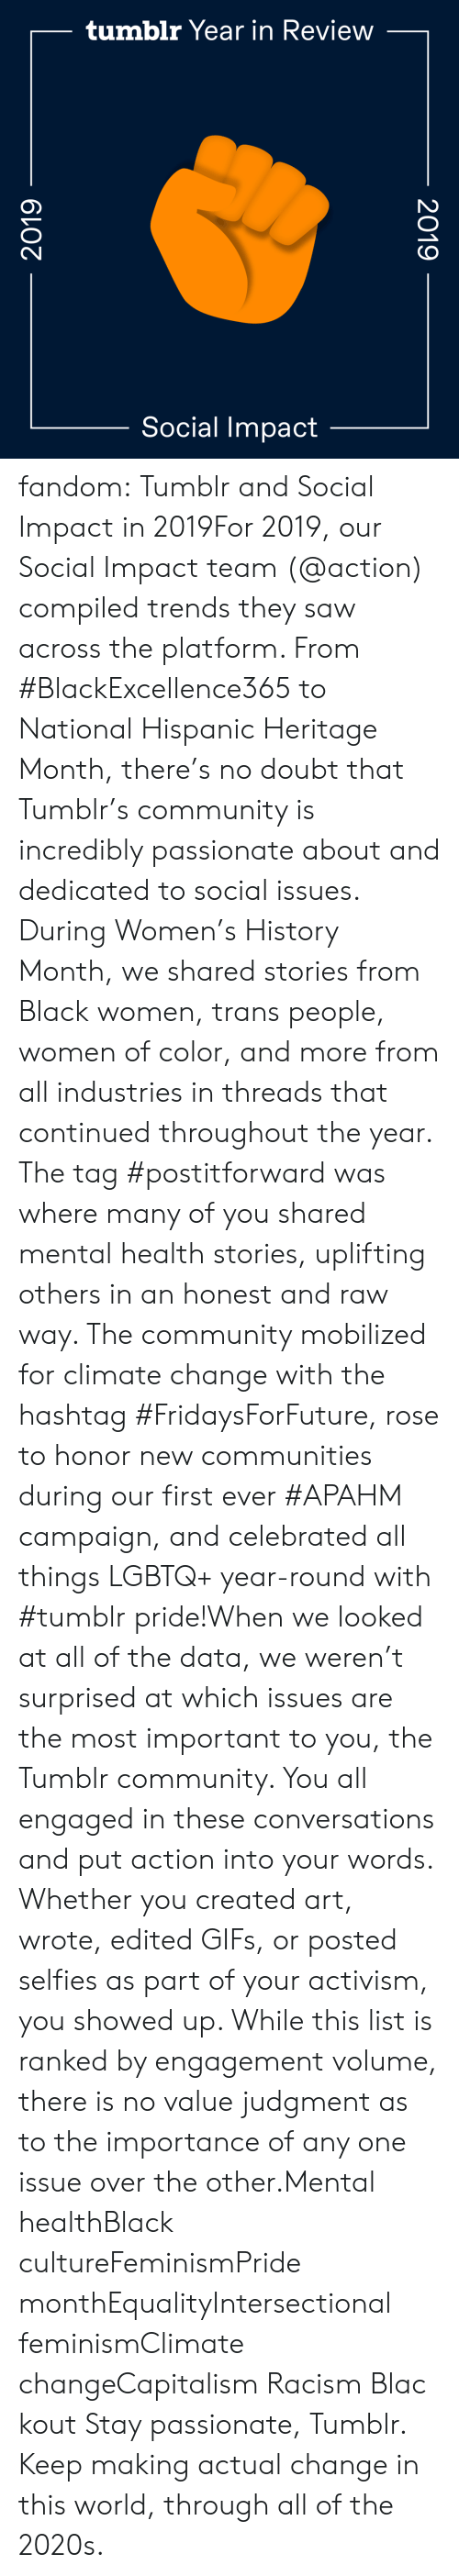 selfies: tumblr Year in Review  Social Impact  2019  2019 fandom:  Tumblr and Social Impact in 2019For 2019, our Social Impact team (@action​) compiled trends they saw across the platform. From #BlackExcellence365 to National Hispanic Heritage Month, there's no doubt that Tumblr's community is incredibly passionate about and dedicated to social issues. During Women's History Month, we shared stories from Black women, trans people, women of color, and more from all industries in threads that continued throughout the year. The tag #postitforward was where many of you shared mental health stories, uplifting others in an honest and raw way. The community mobilized for climate change with the hashtag #FridaysForFuture, rose to honor new communities during our first ever #APAHM campaign, and celebrated all things LGBTQ+ year-round with #tumblr pride!When we looked at all of the data, we weren't surprised at which issues are the most important to you, the Tumblr community. You all engaged in these conversations and put action into your words. Whether you created art, wrote, edited GIFs, or posted selfies as part of your activism, you showed up. While this list is ranked by engagement volume, there is no value judgment as to the importance of any one issue over the other.Mental healthBlack cultureFeminismPride monthEqualityIntersectional feminismClimate changeCapitalism Racism Blackout Stay passionate, Tumblr. Keep making actual change in this world, through all of the 2020s.